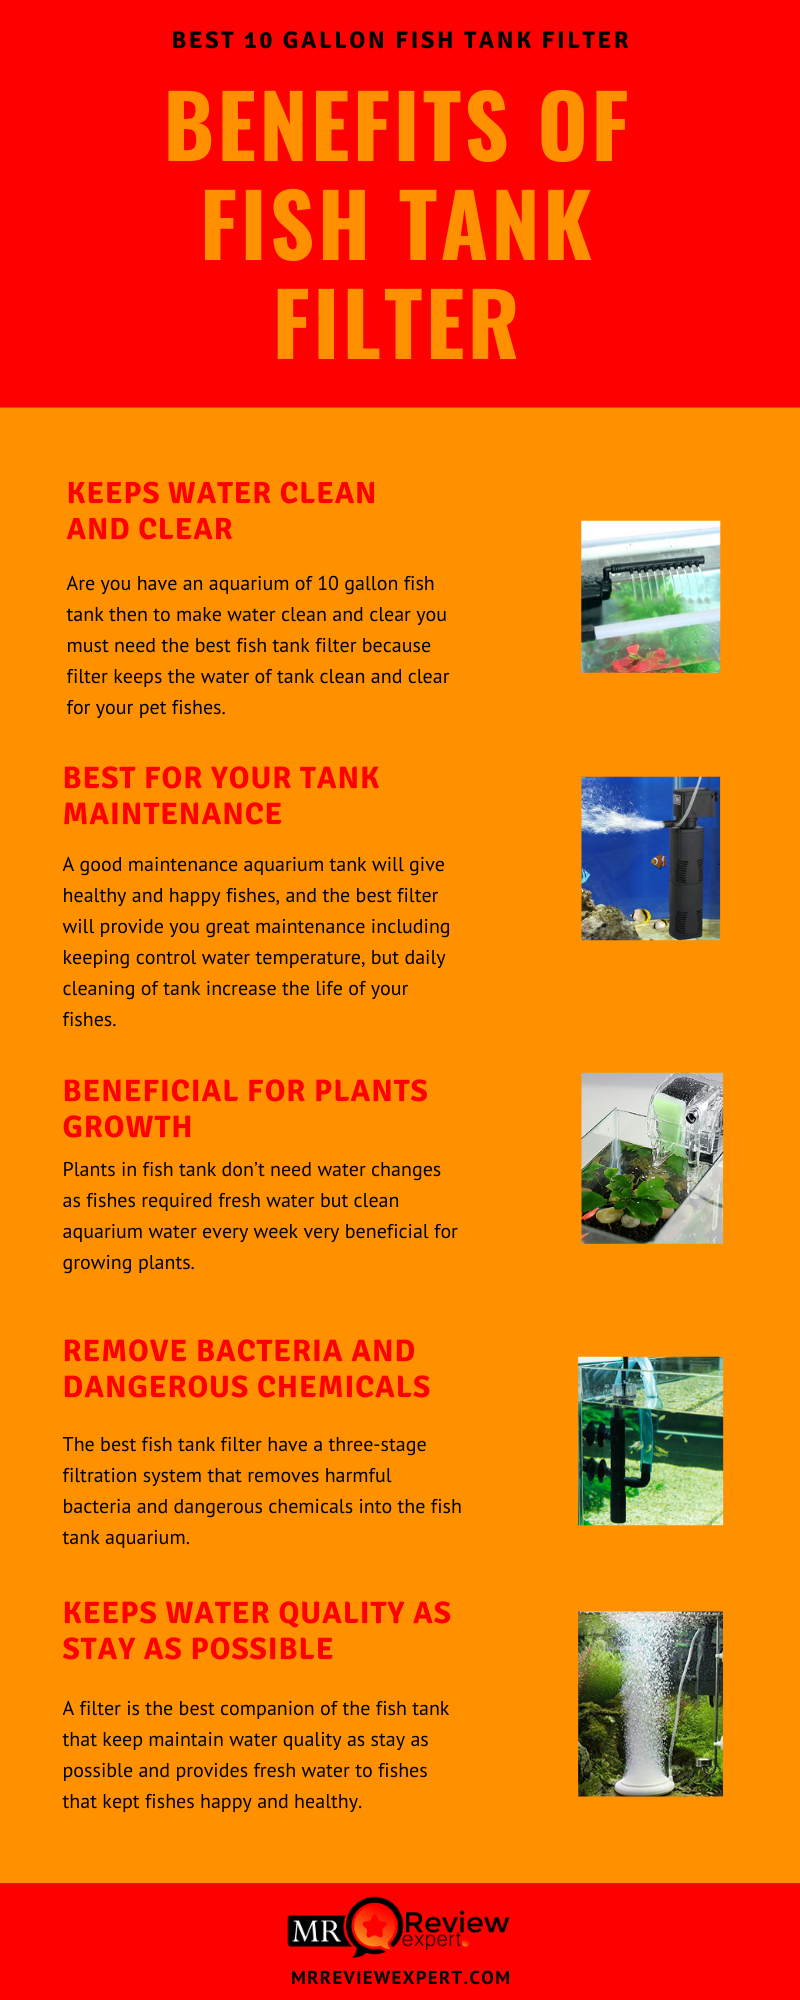 Benefits of fish tank filter